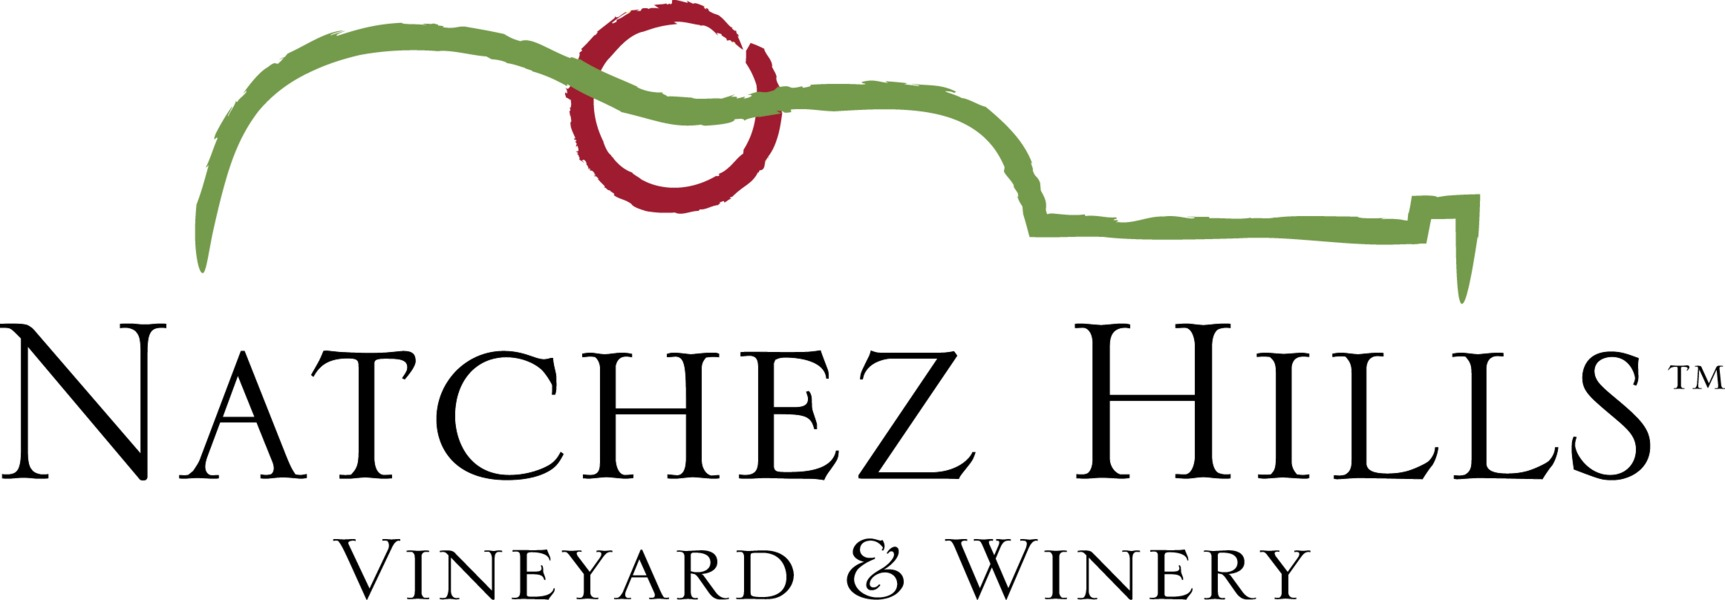 Logo for Natchez Hills Vineyard